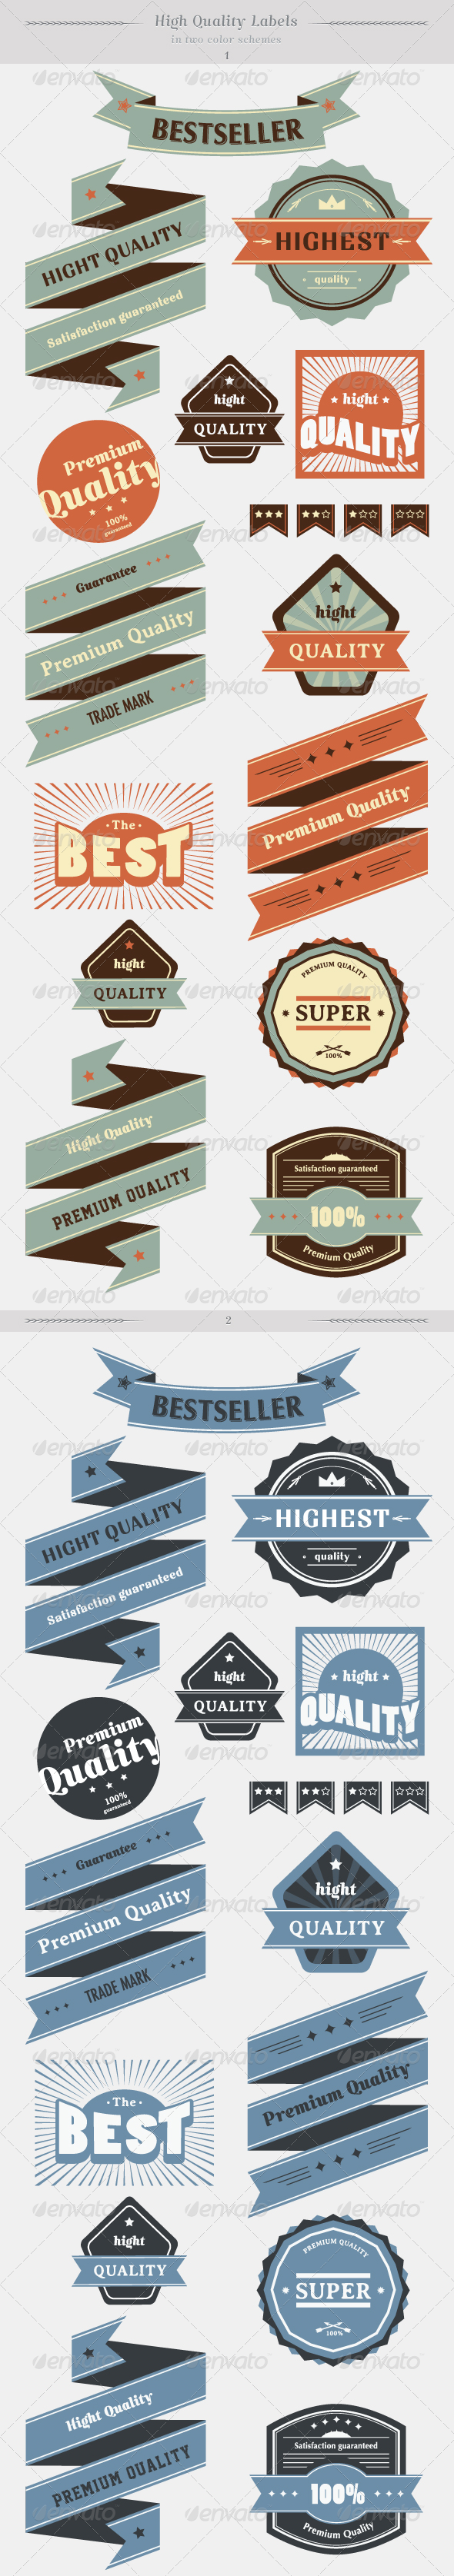 High Quality Labels Whit Vintage Design Stock Vect - Decorative Symbols Decorative